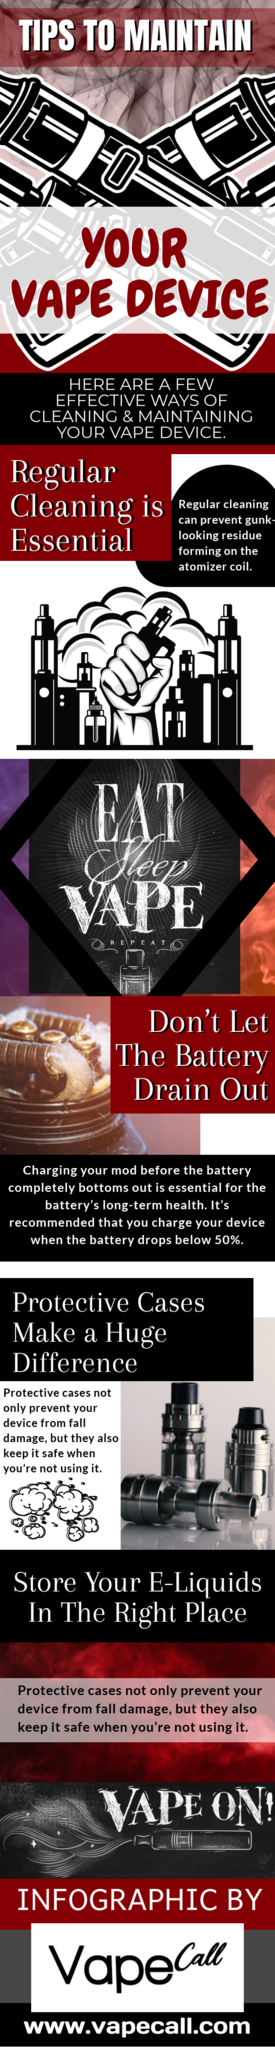 Tips To Maintain Your Vape Device